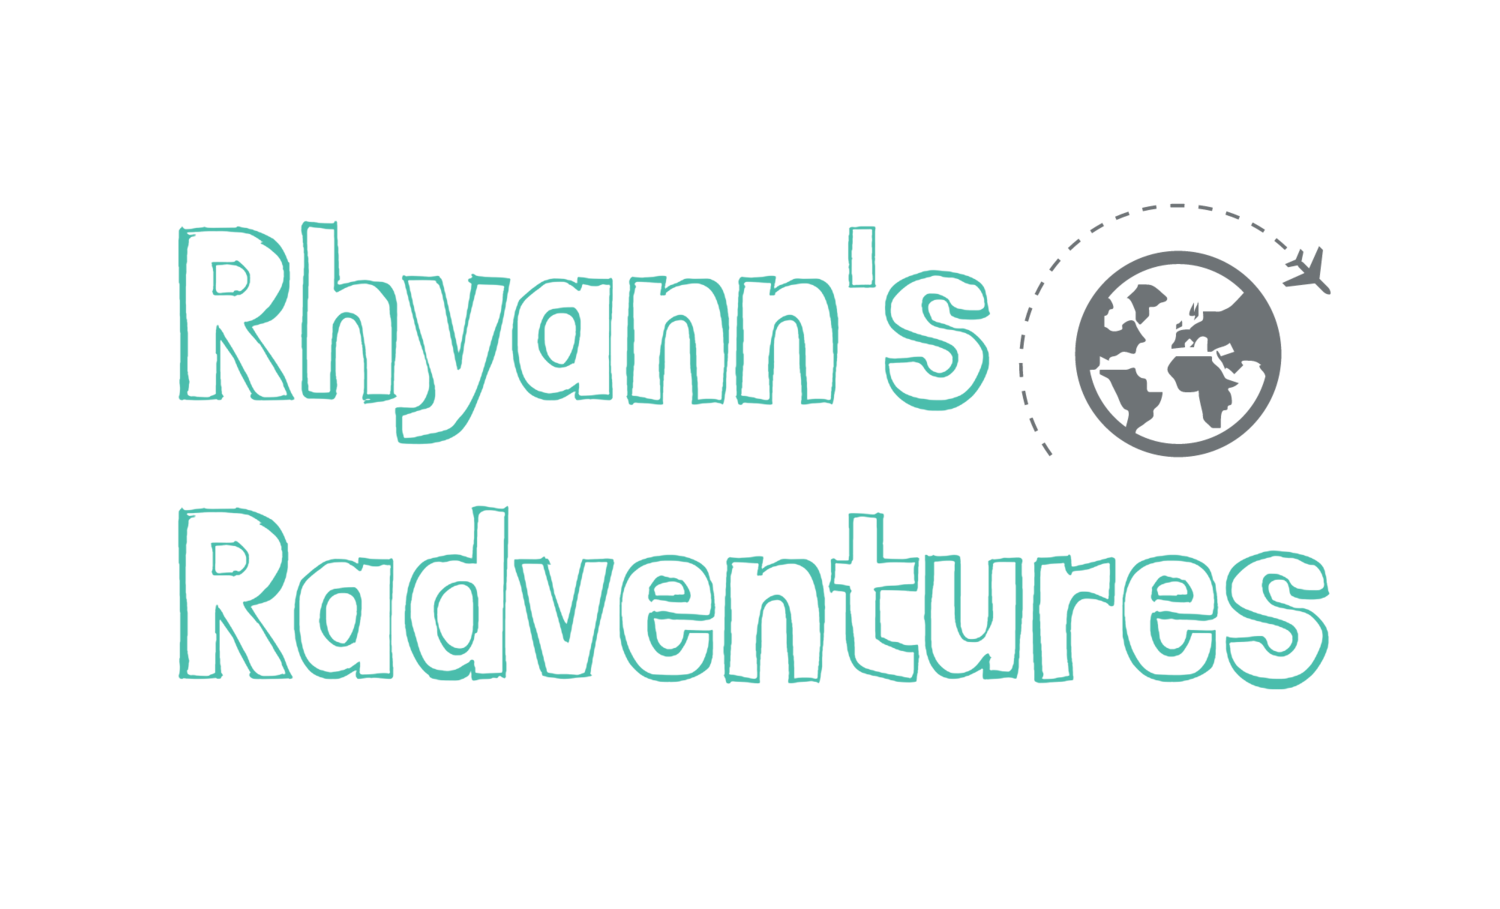 Rhyann's (Rad)ventures